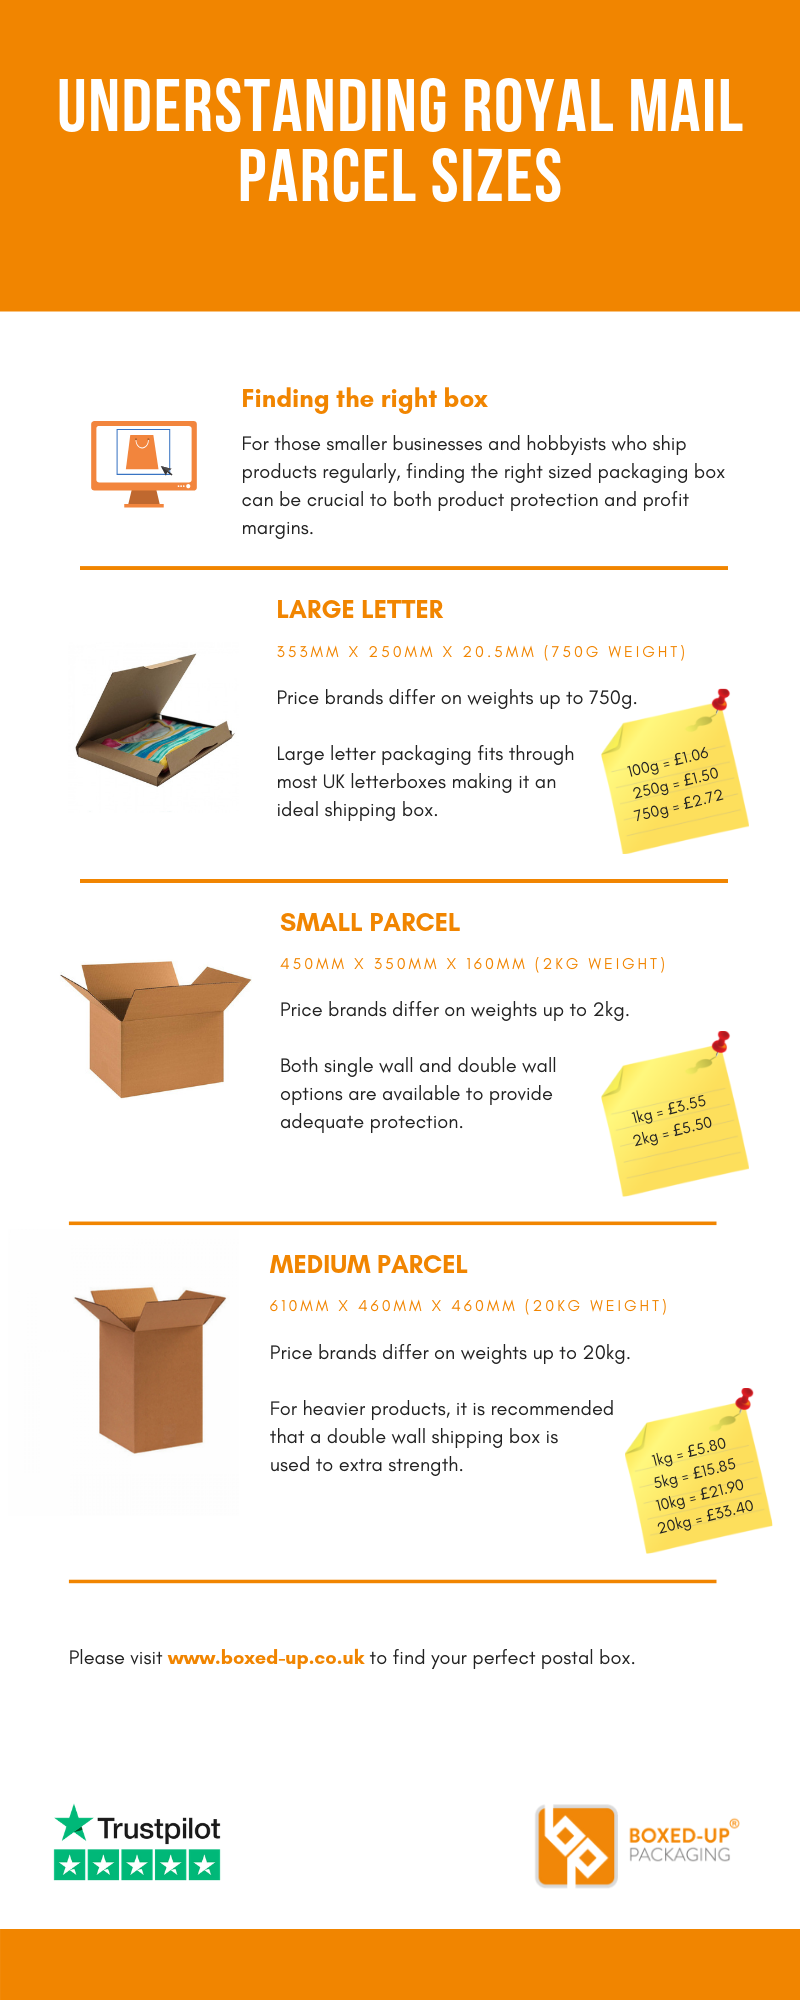 Understanding Royal Mail Parcel Sizes (infographic)